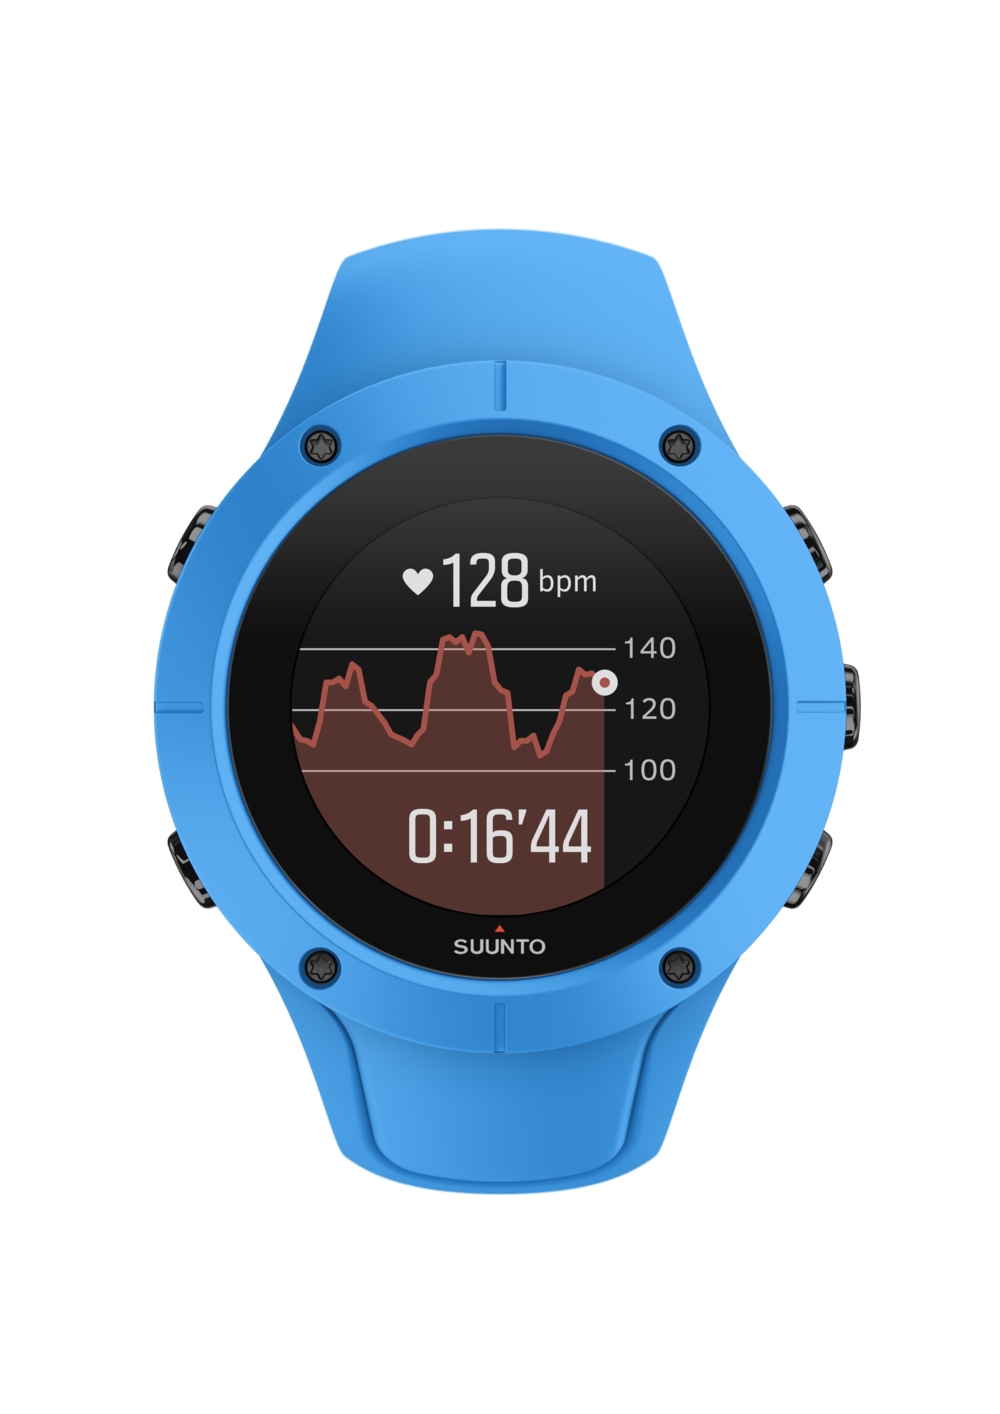 SS023002000 - SPARTAN - Trainer Wrist HR Blue - Front View_TR-Running-basic-HRgraph.png